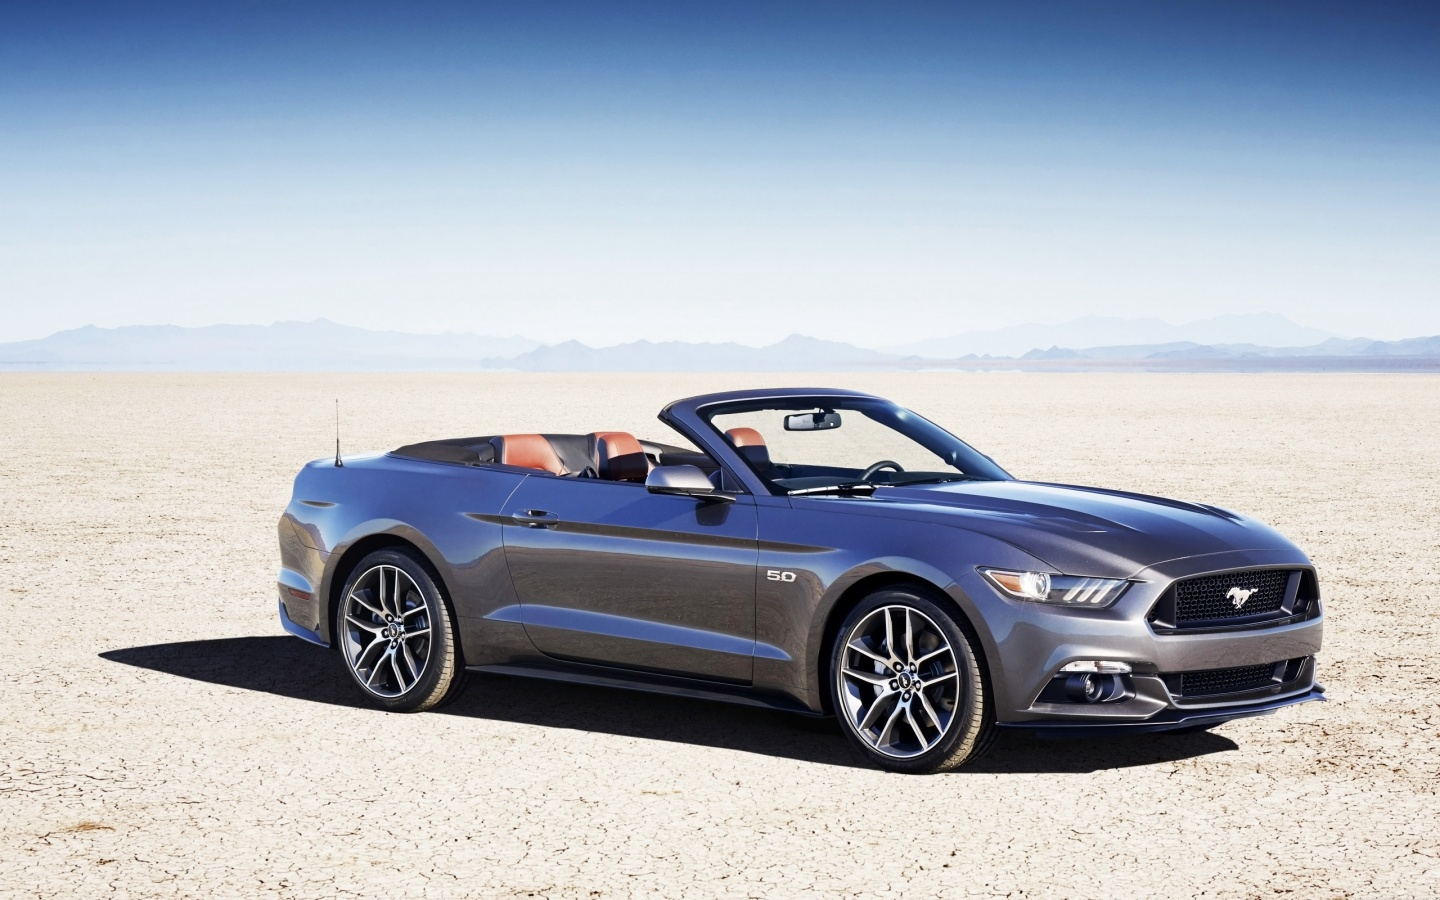 2015 Ford Mustang Hd Wallpaper Wallpapersafari 2016 Gt Wiring Diagram Convertible Car Wallpapers 1440x900